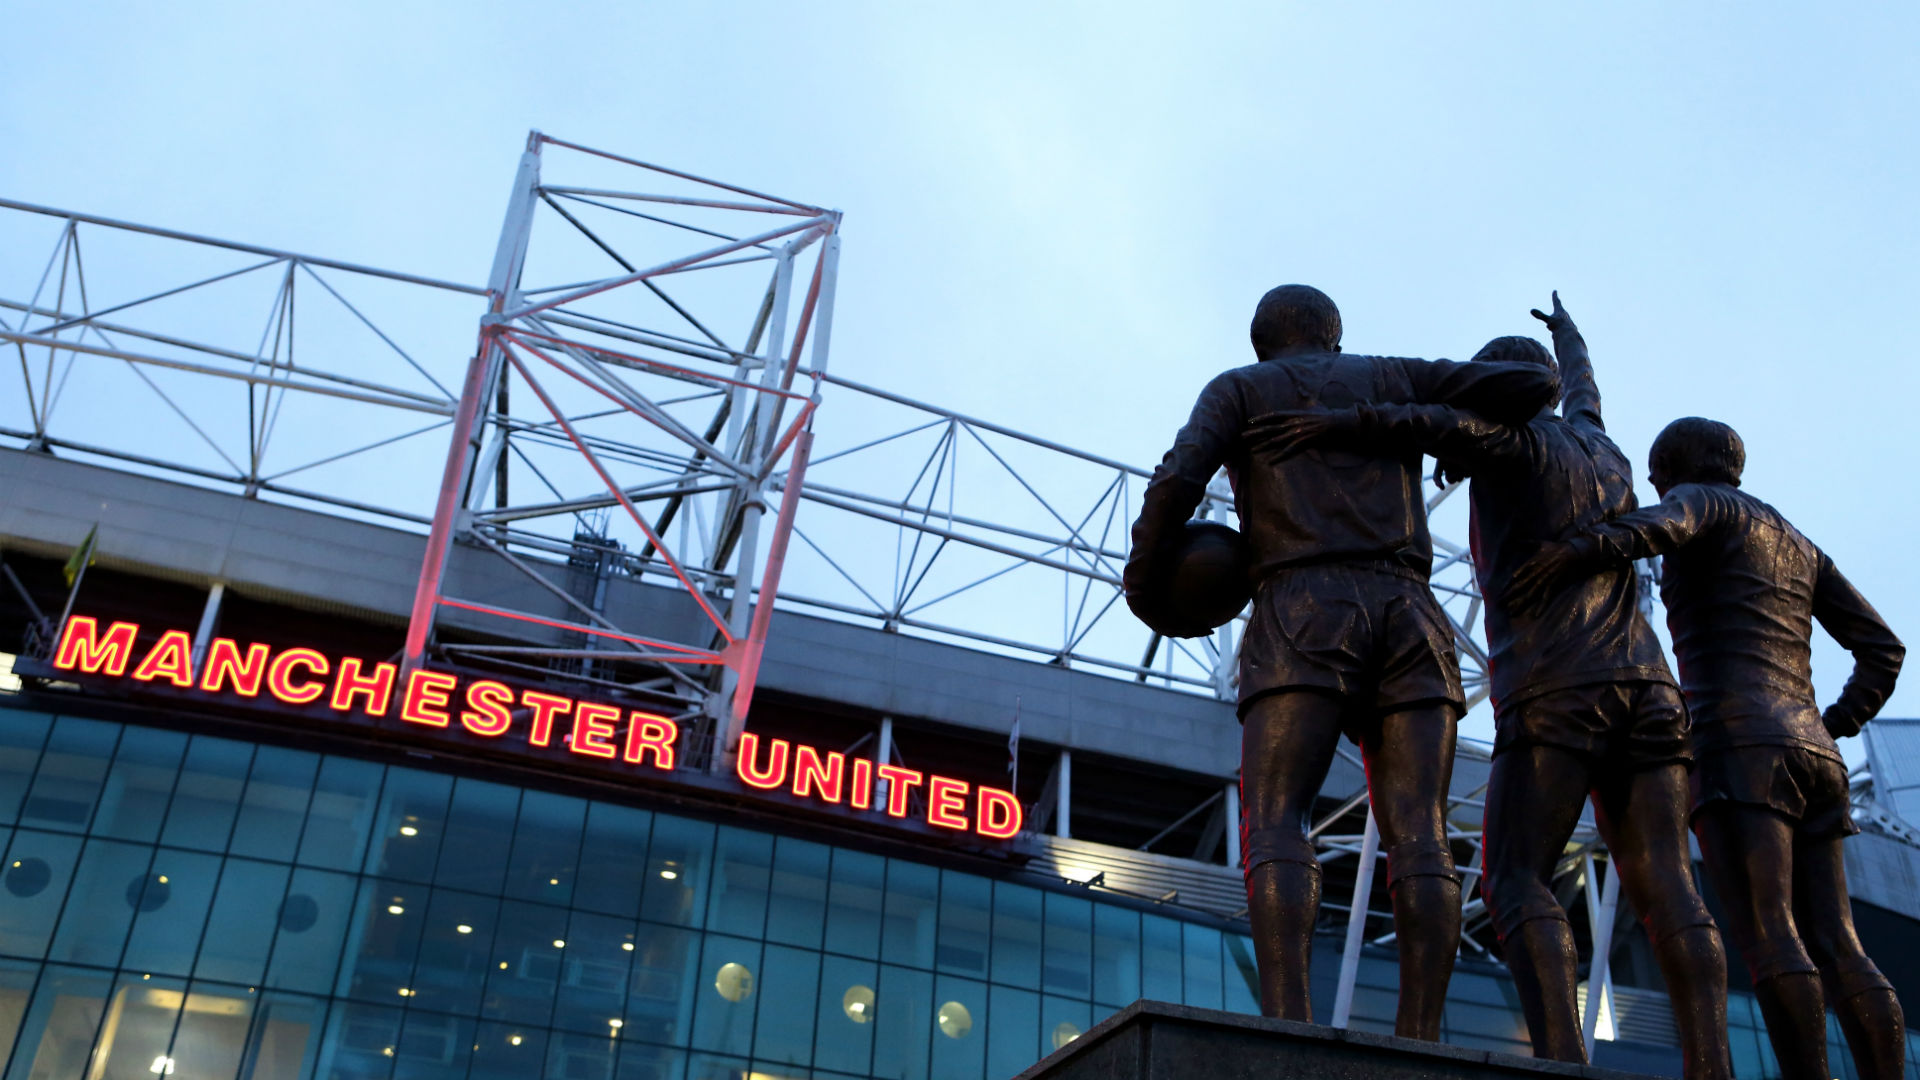 Manchester United in ongoing discussions with NHS to help during Covid-19 outbreak